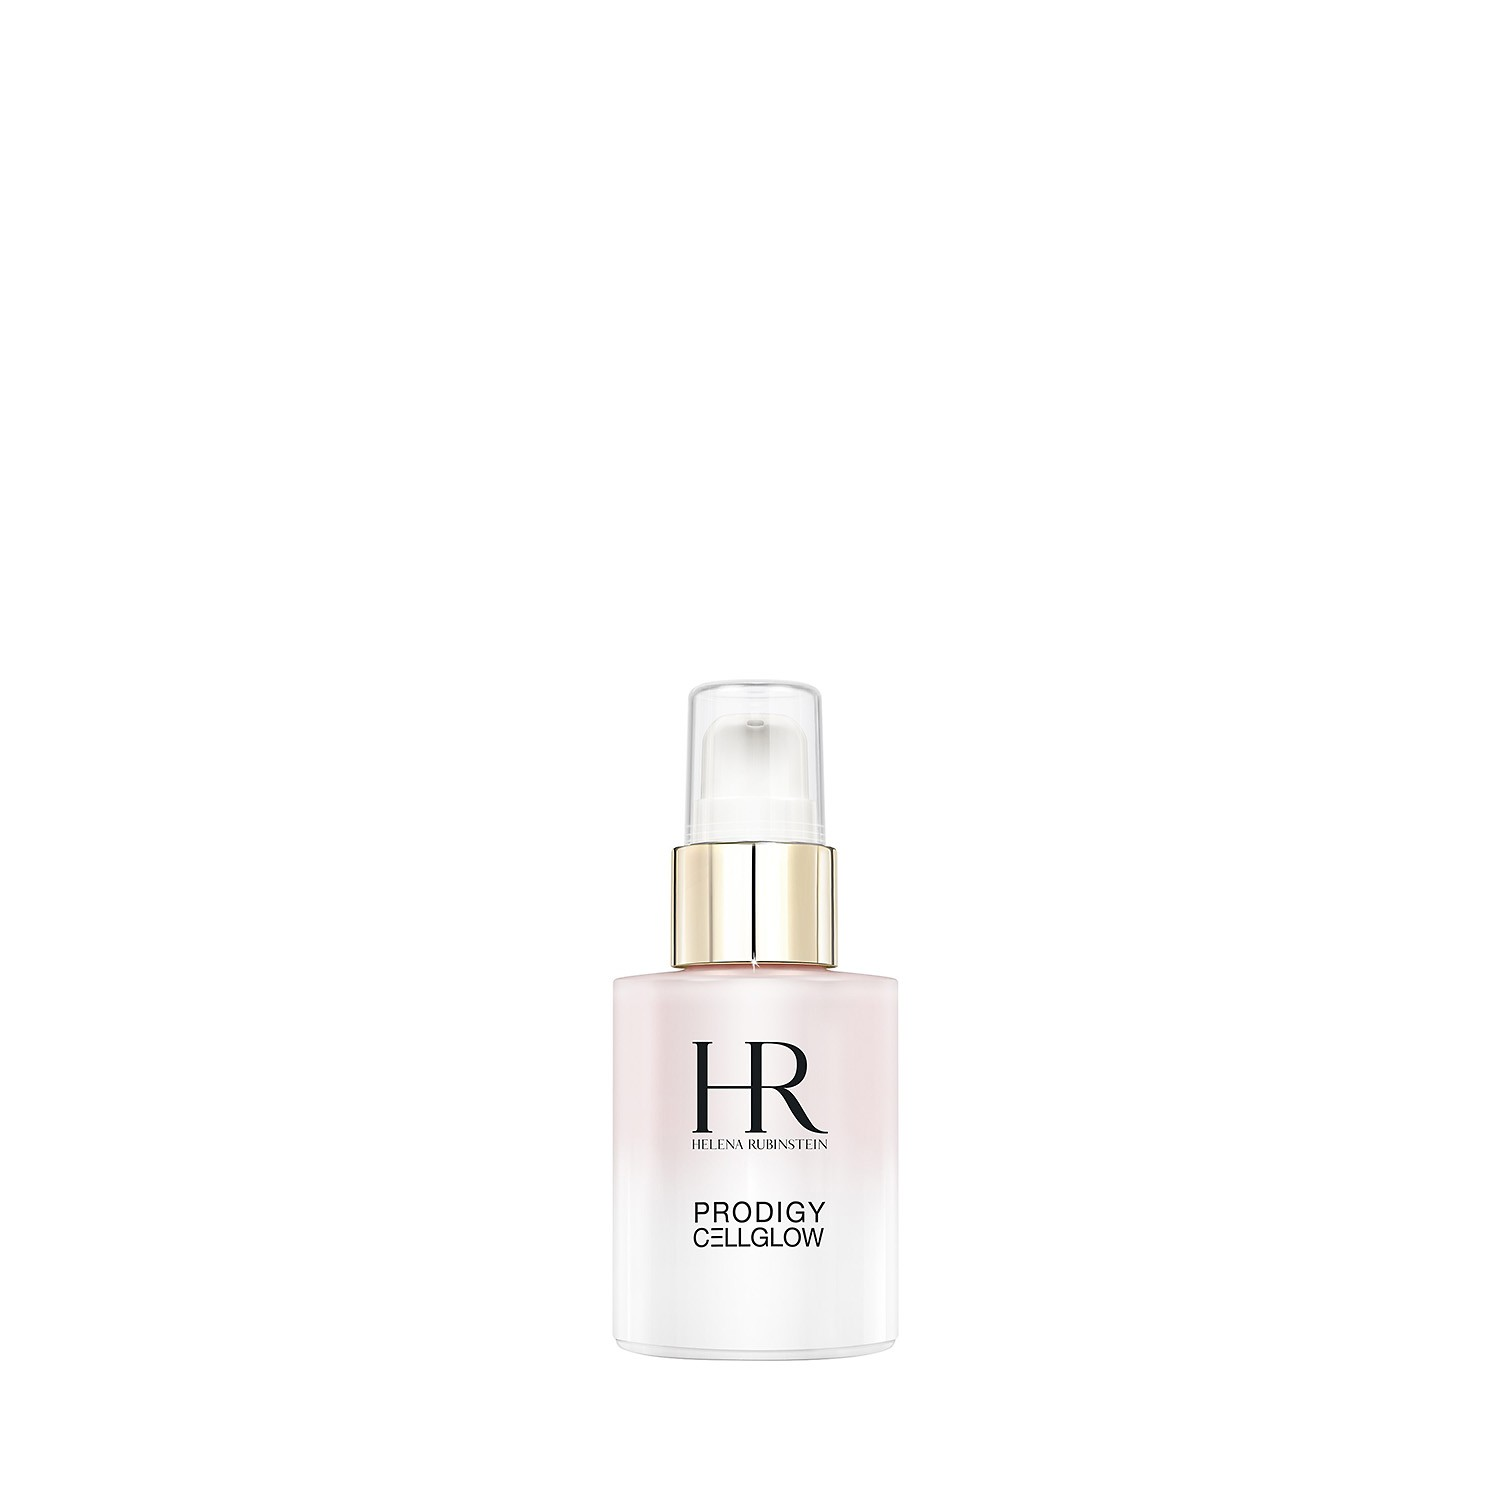 PRODIGY CELL GLOW SHEER ROSY UV FLUID 30ML